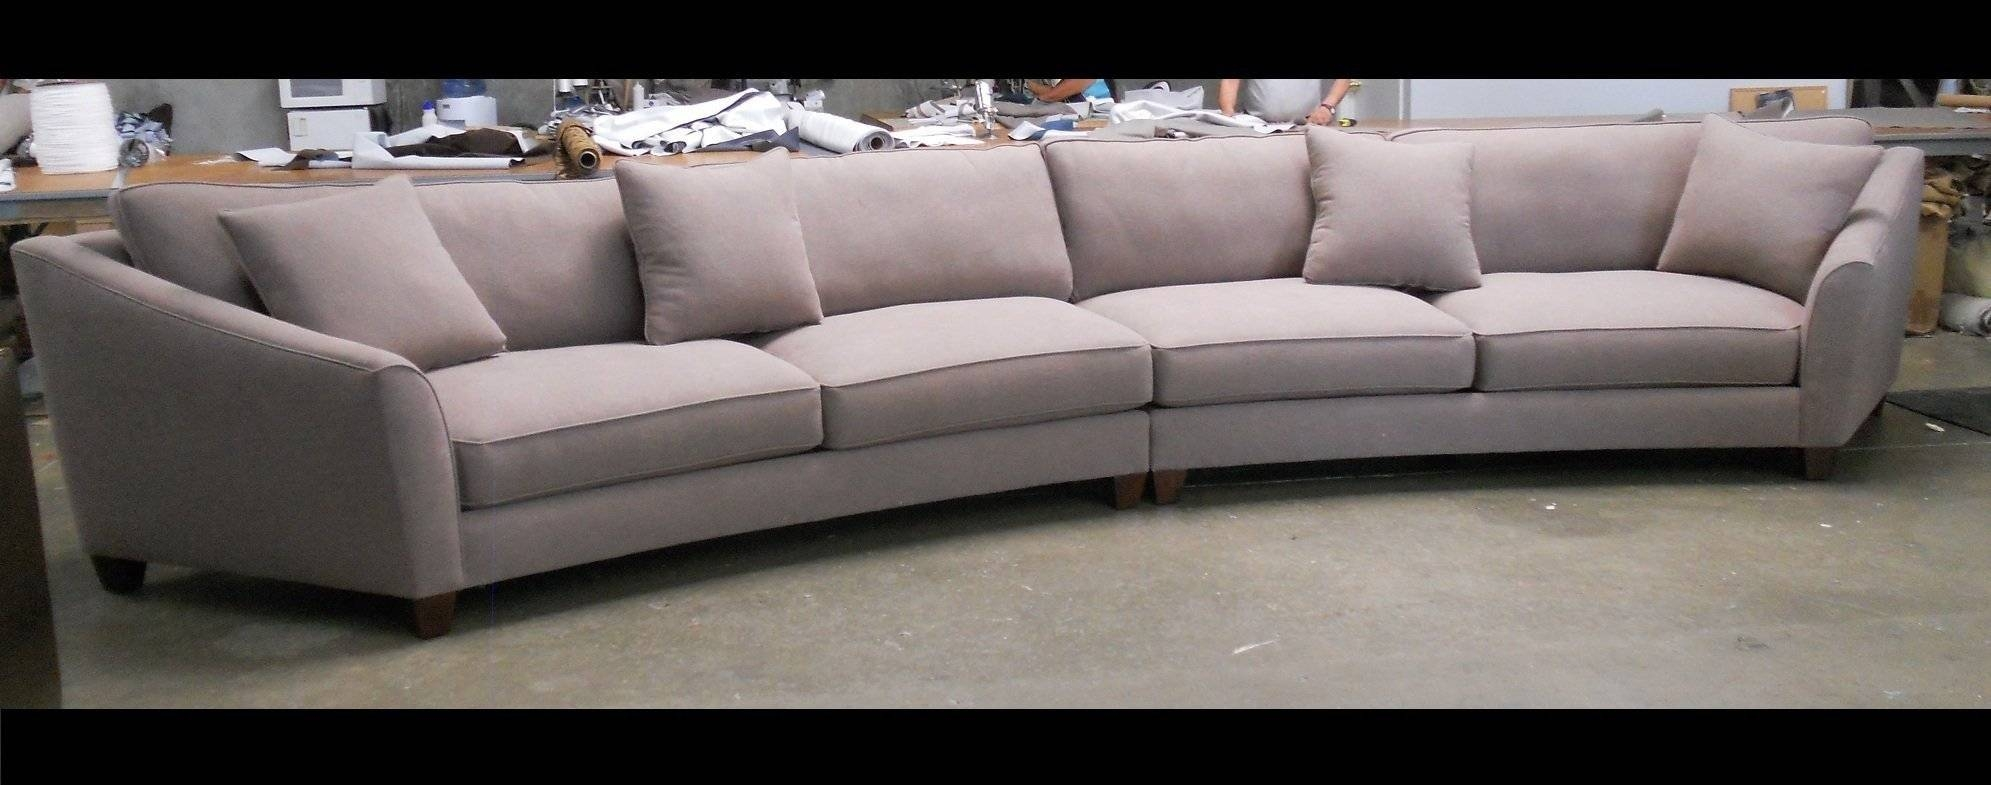 Curved Sectional Sofa Set - Rich Comfortable Upholstered Fabric with Contemporary Curved Sofas (Image 11 of 30)